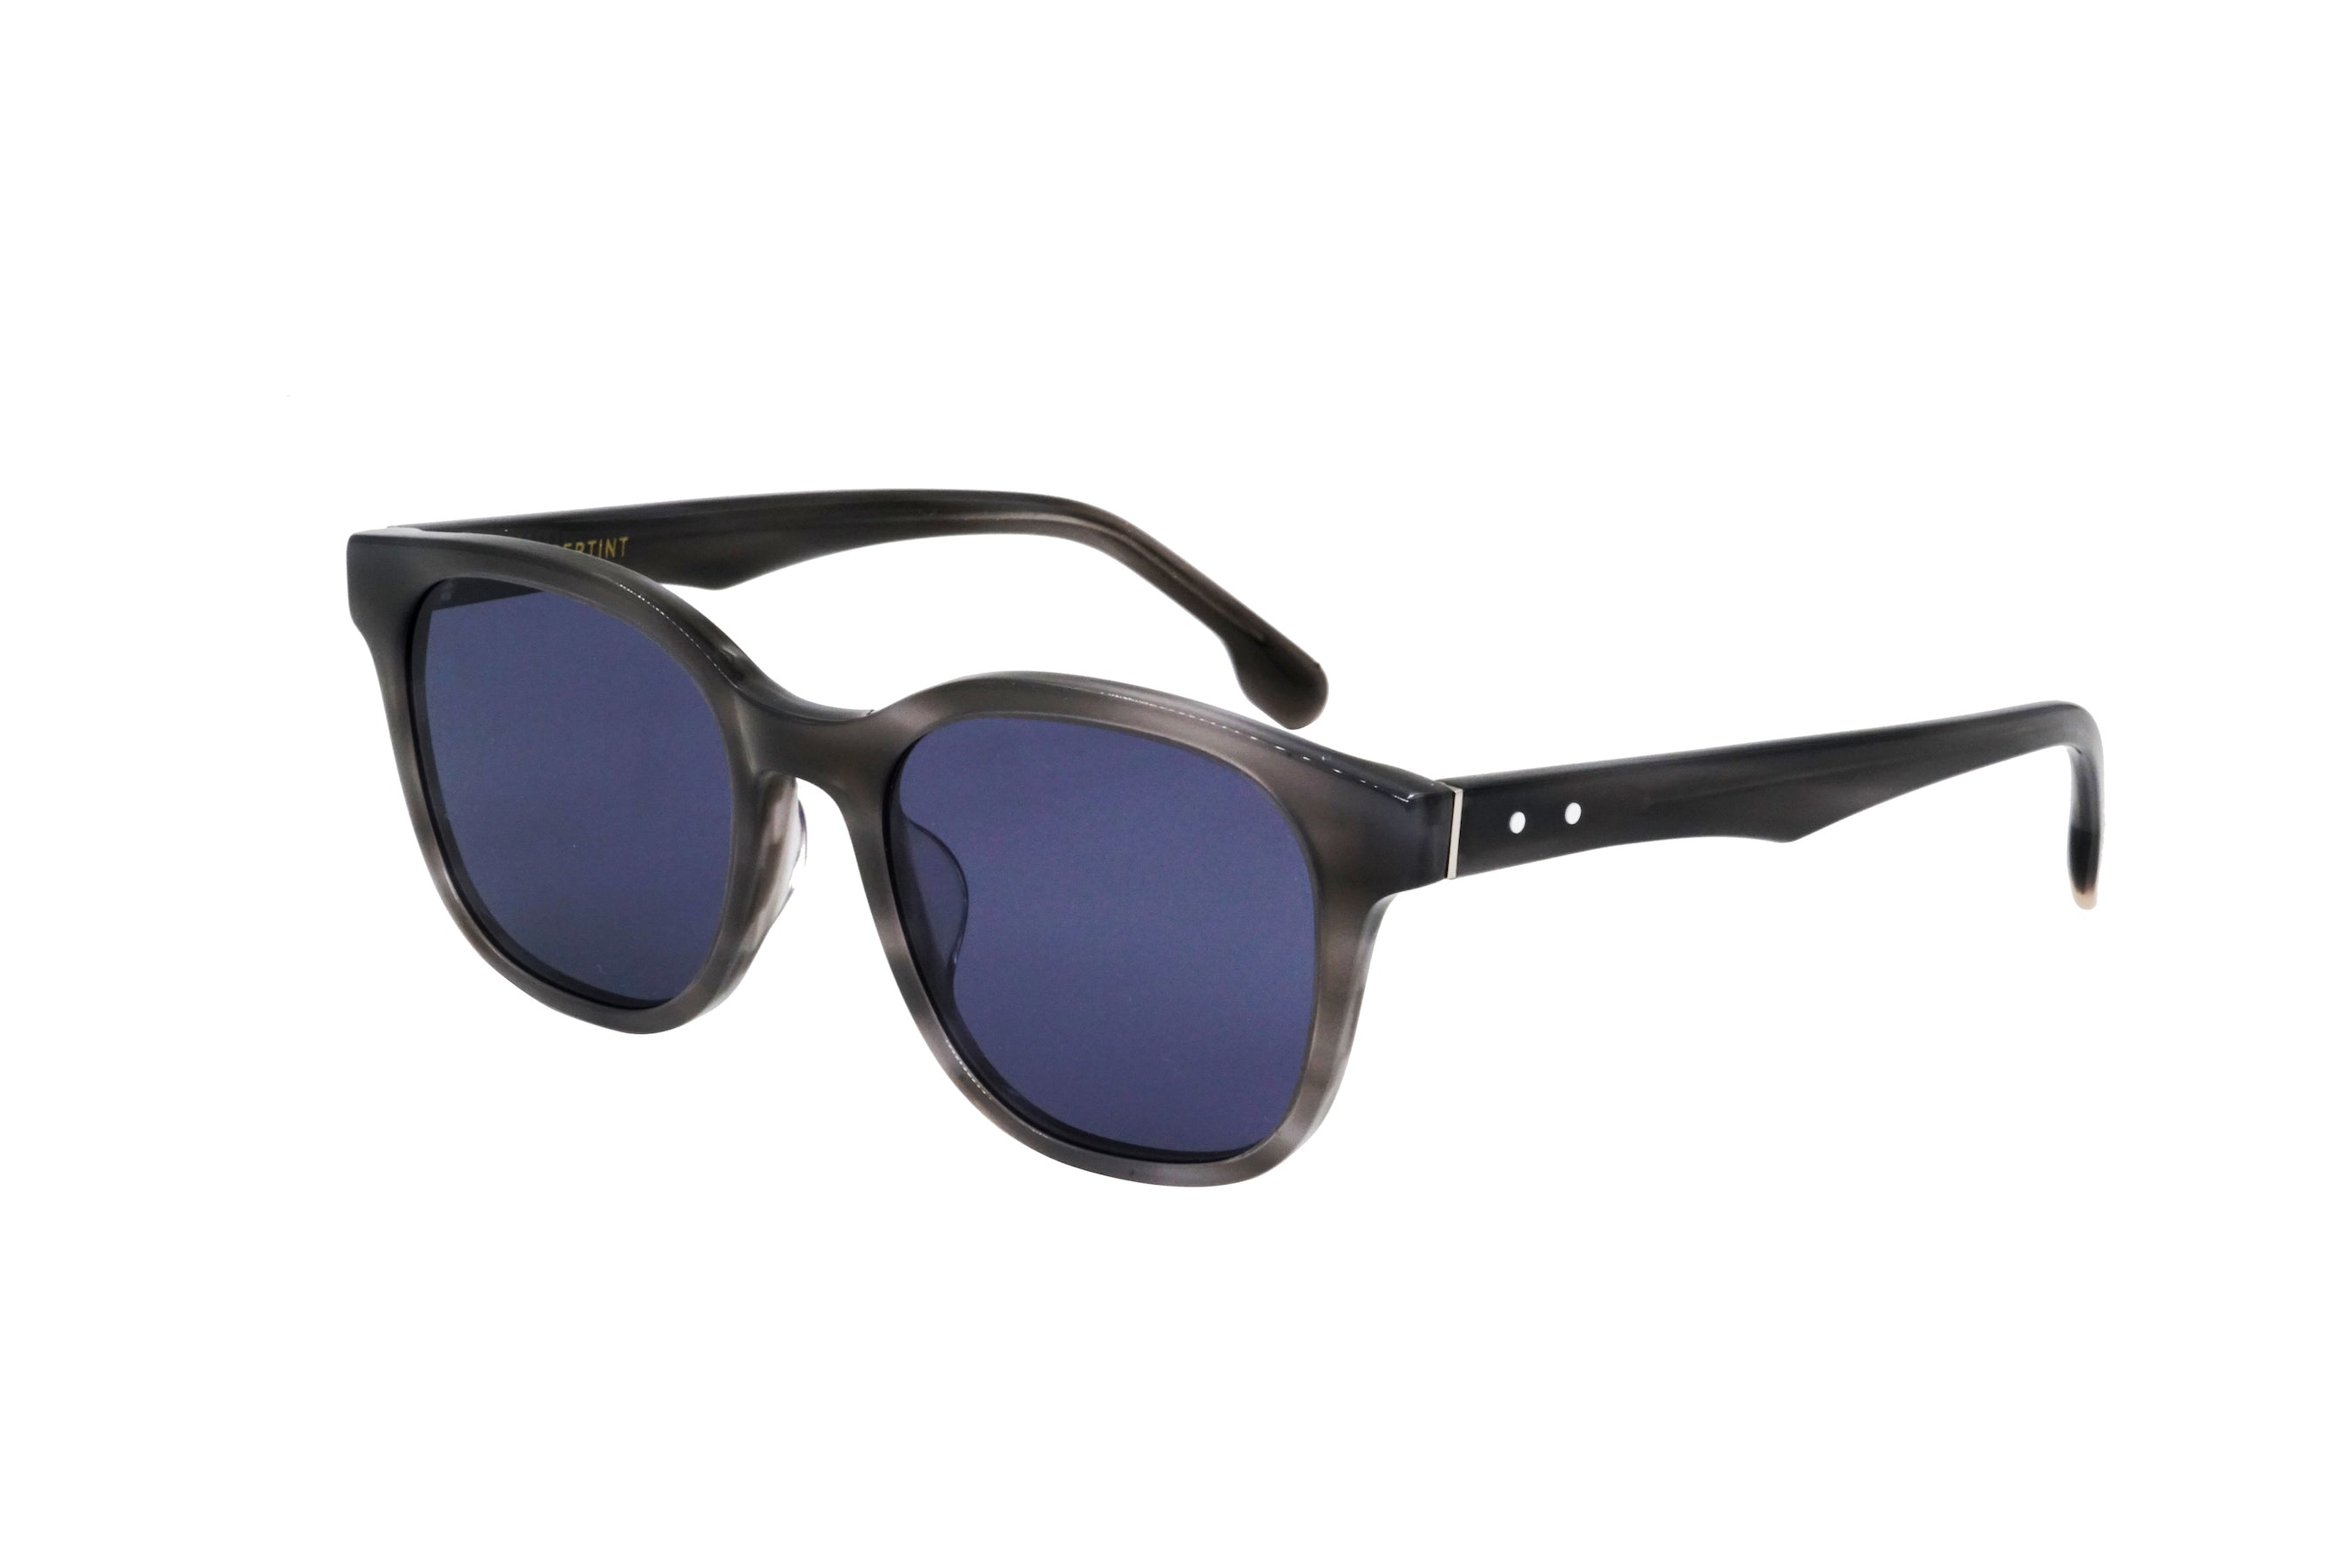 PCH in Smoke Polarized Lens - Peppertint - Designer sunglasses